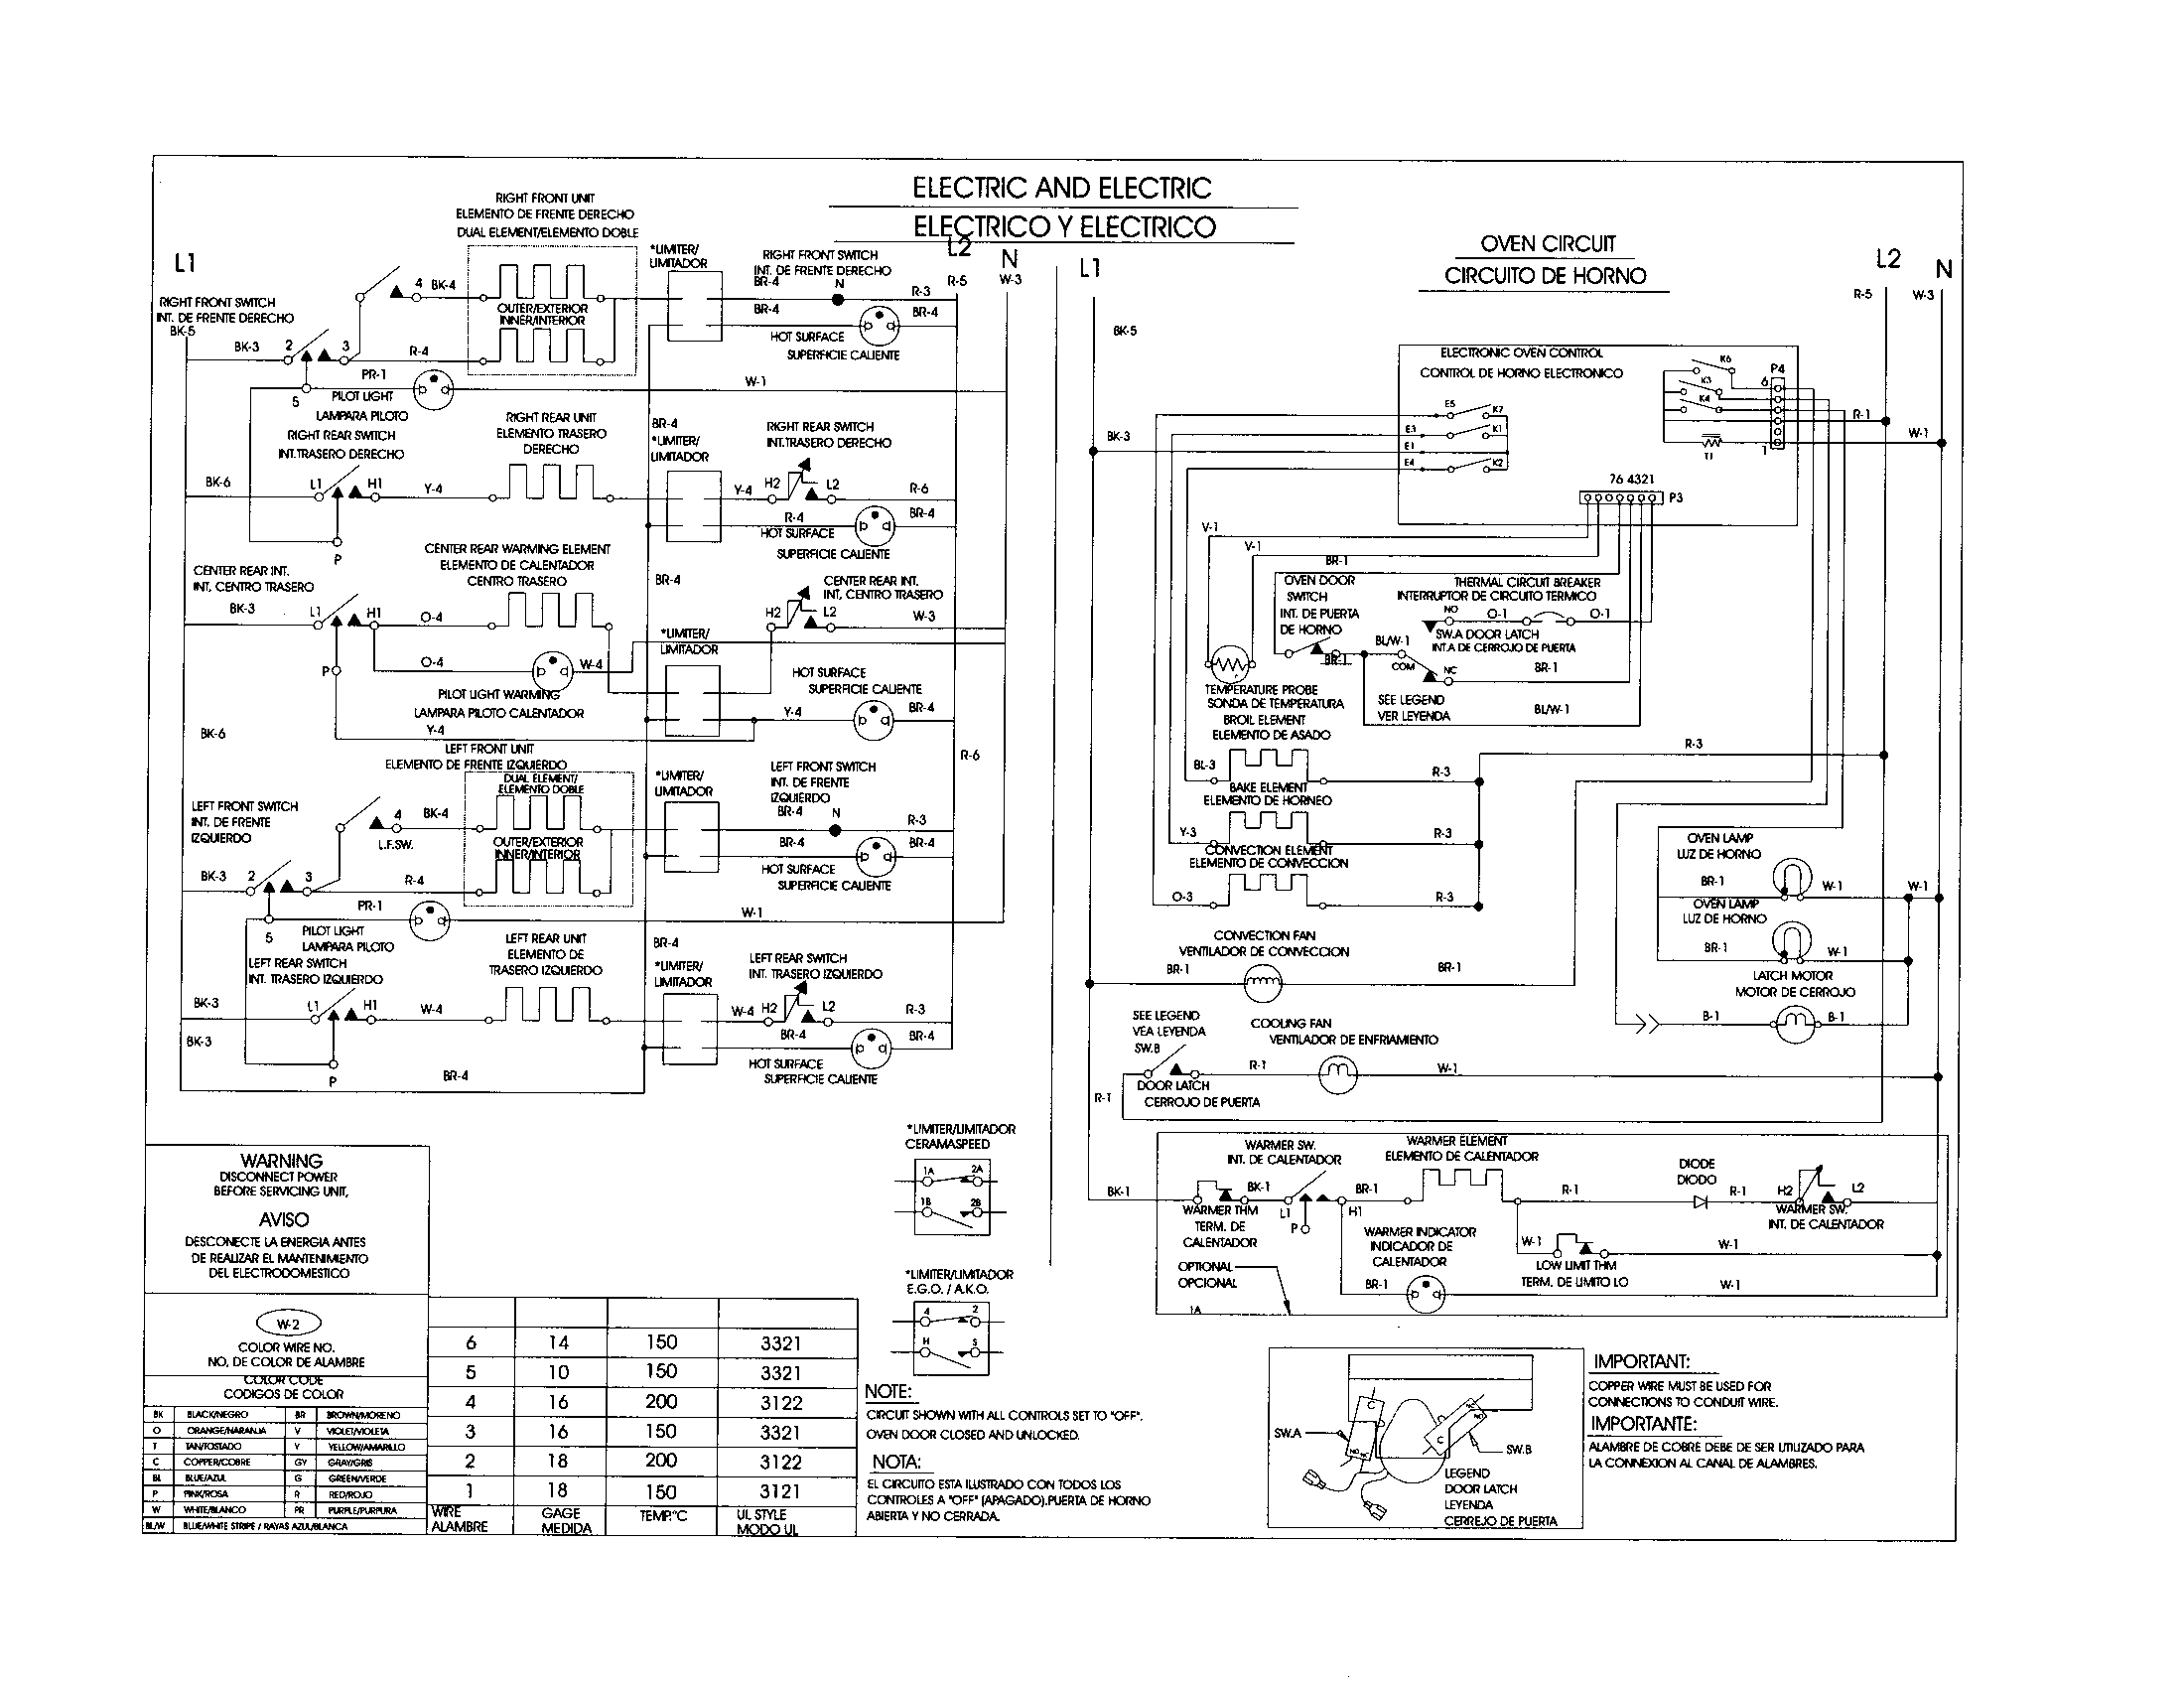 wiring parts wiring diagram for whirlpool refrigerator model ed25cqxfho2  at panicattacktreatment.co